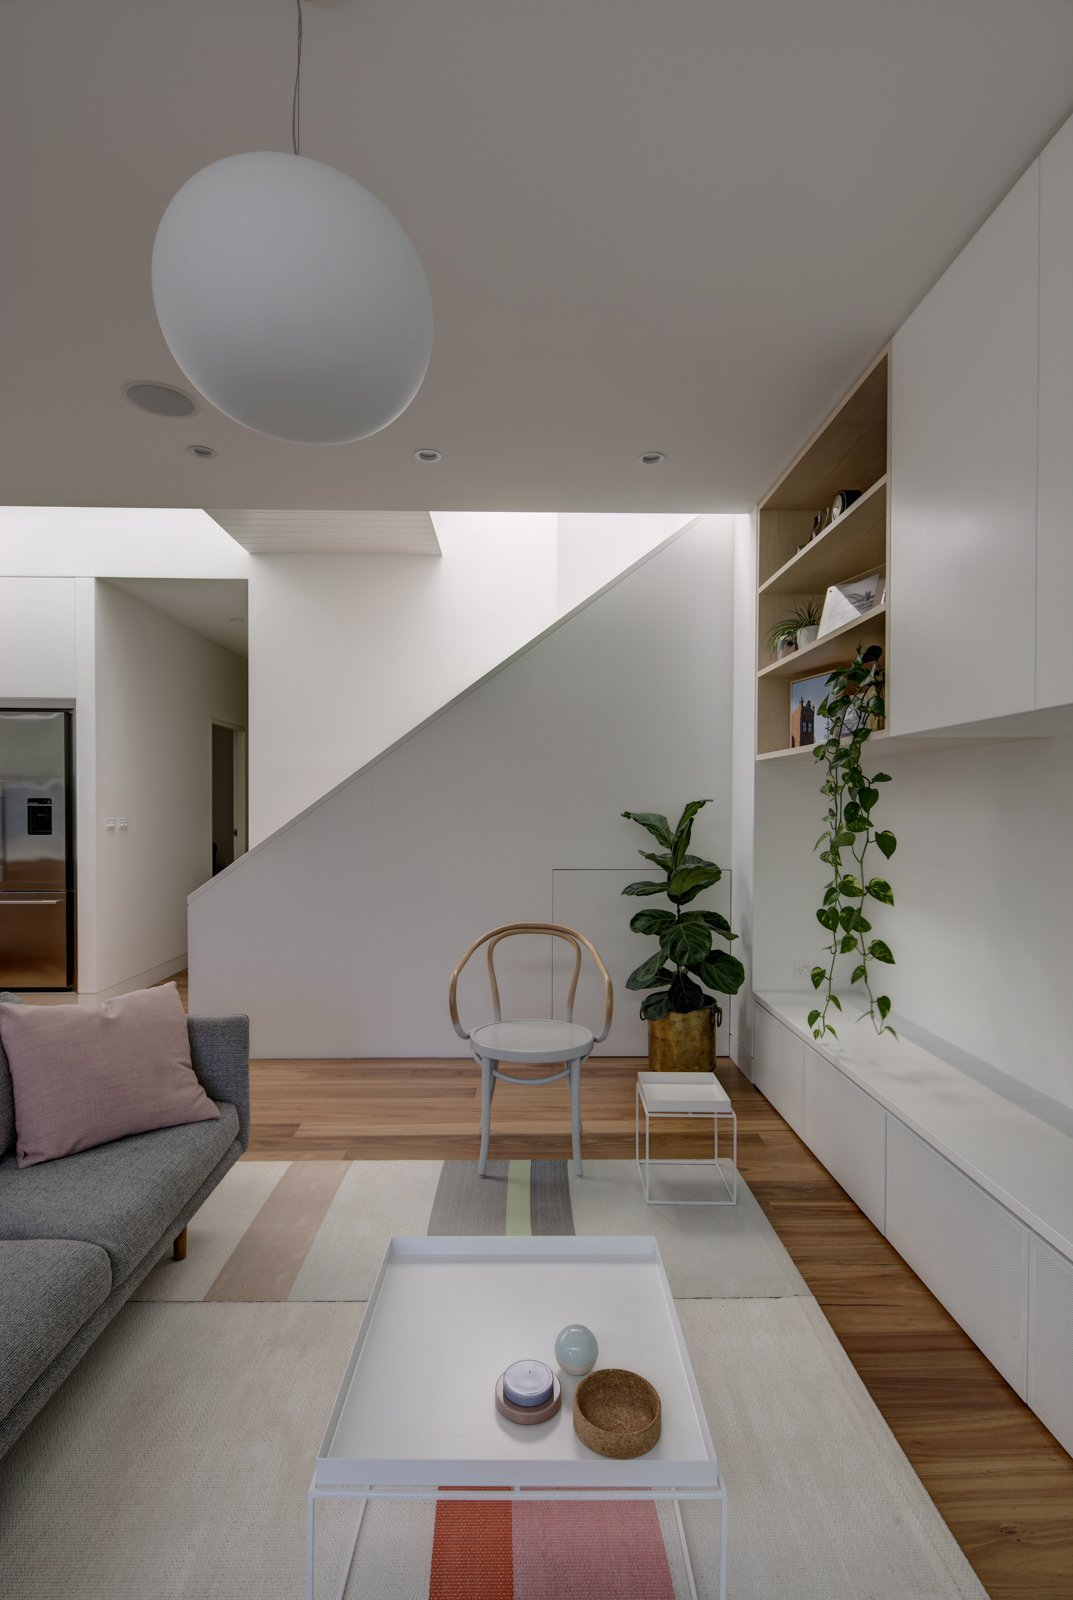 Colourful furnishings animate the space. Thonet armchair, Jardan Nook lounge and Hay side tables provide a comfortable, deliberately low key setting. Tagged: Living Room, Sofa, Chair, Coffee Tables, Bookcase, Ceiling Lighting, and Medium Hardwood Floor.  Inner West House by Andrew Burns